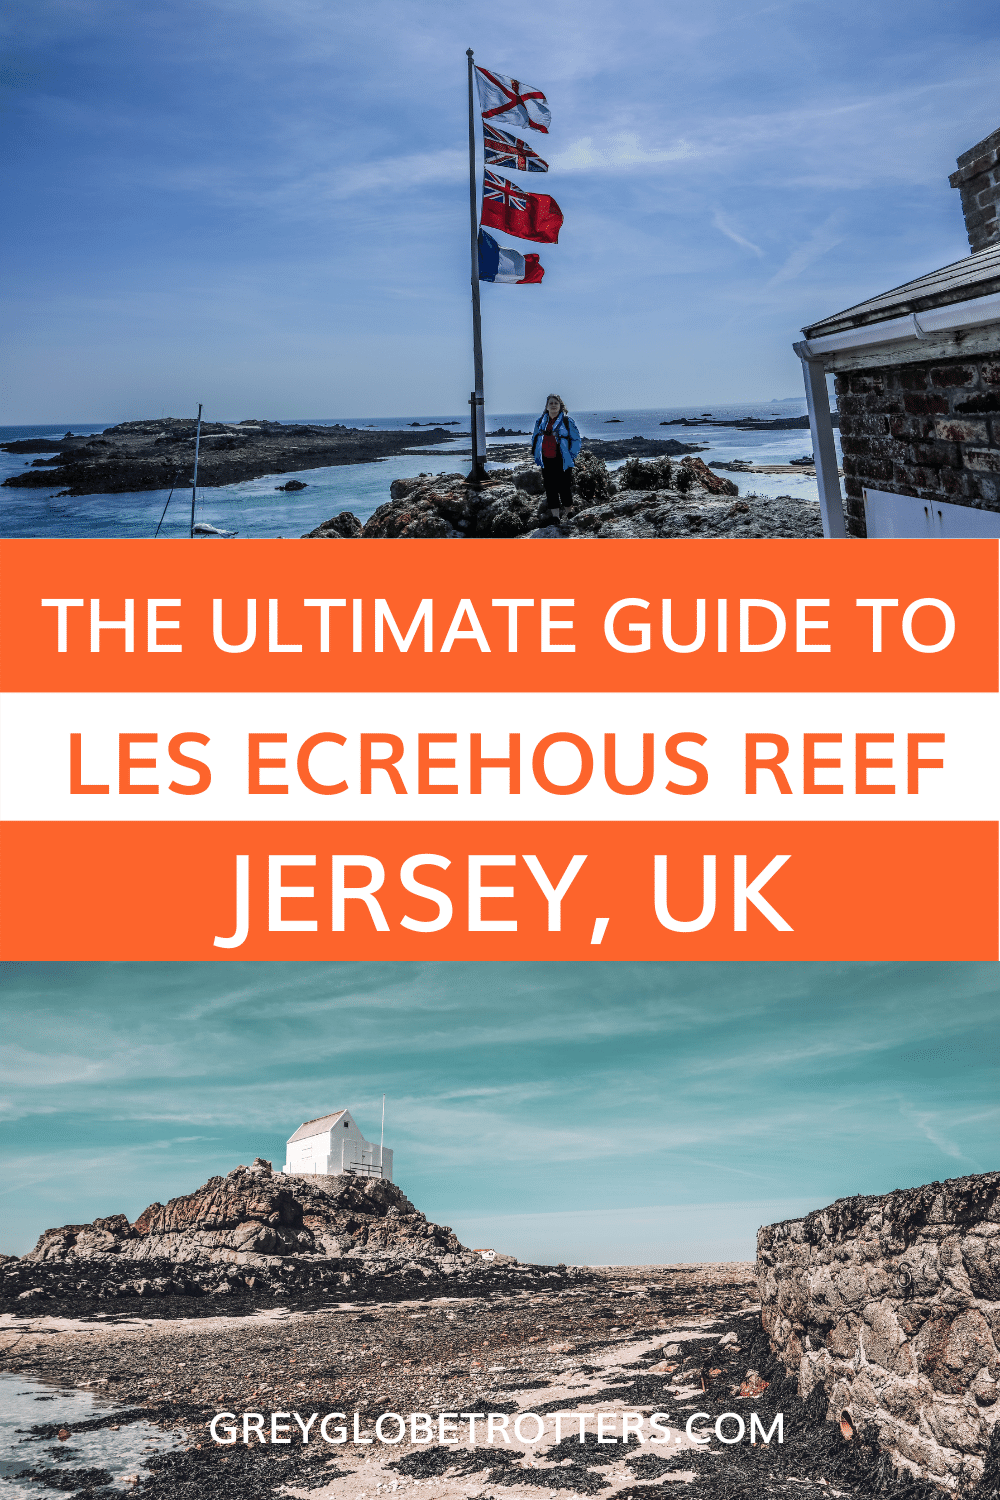 The Ultimate Guide to Les Ecrehous Reef, Jersey, UK